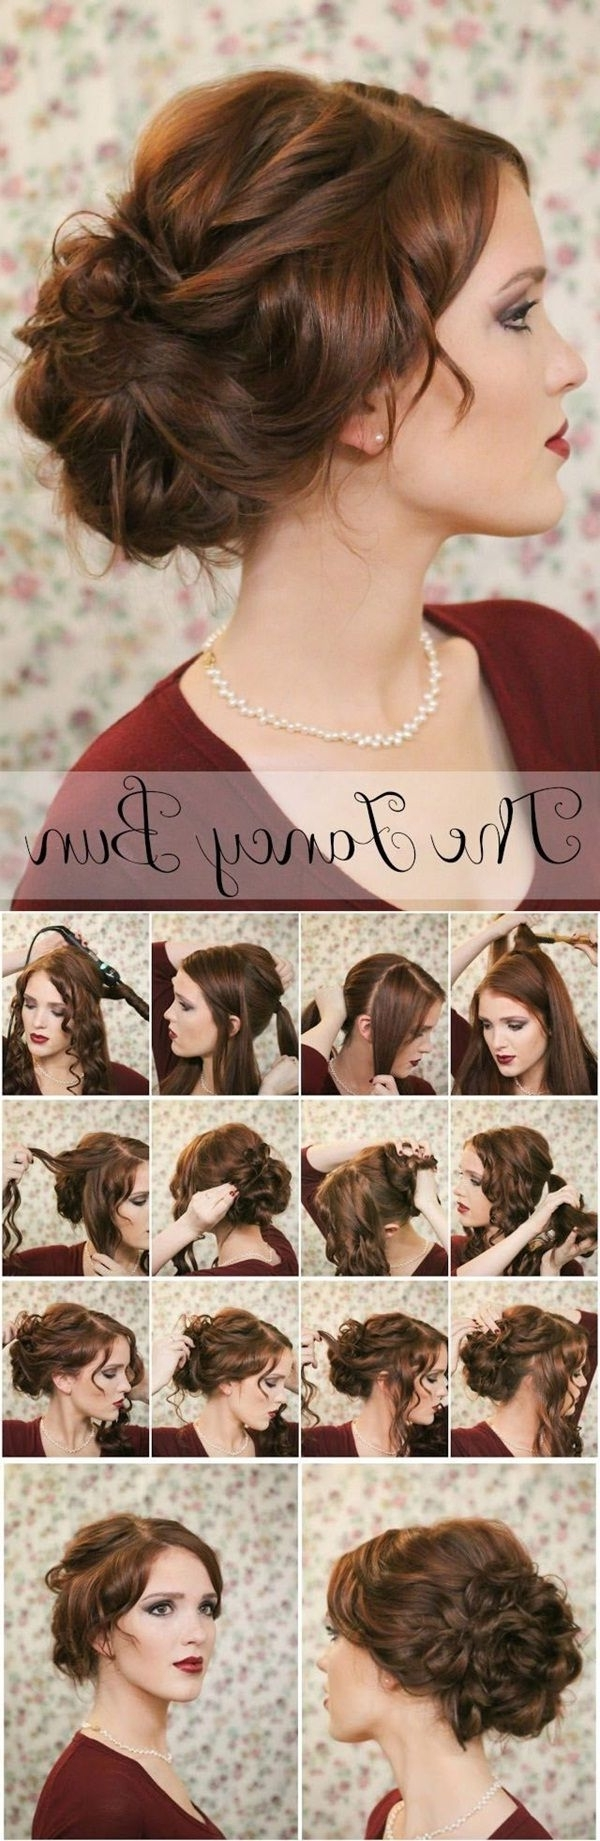 Current Do It Yourself Wedding Hairstyles For Medium Length Hair Regarding 20 Diy Wedding Hairstyles With Tutorials To Try On Your Own (View 13 of 15)